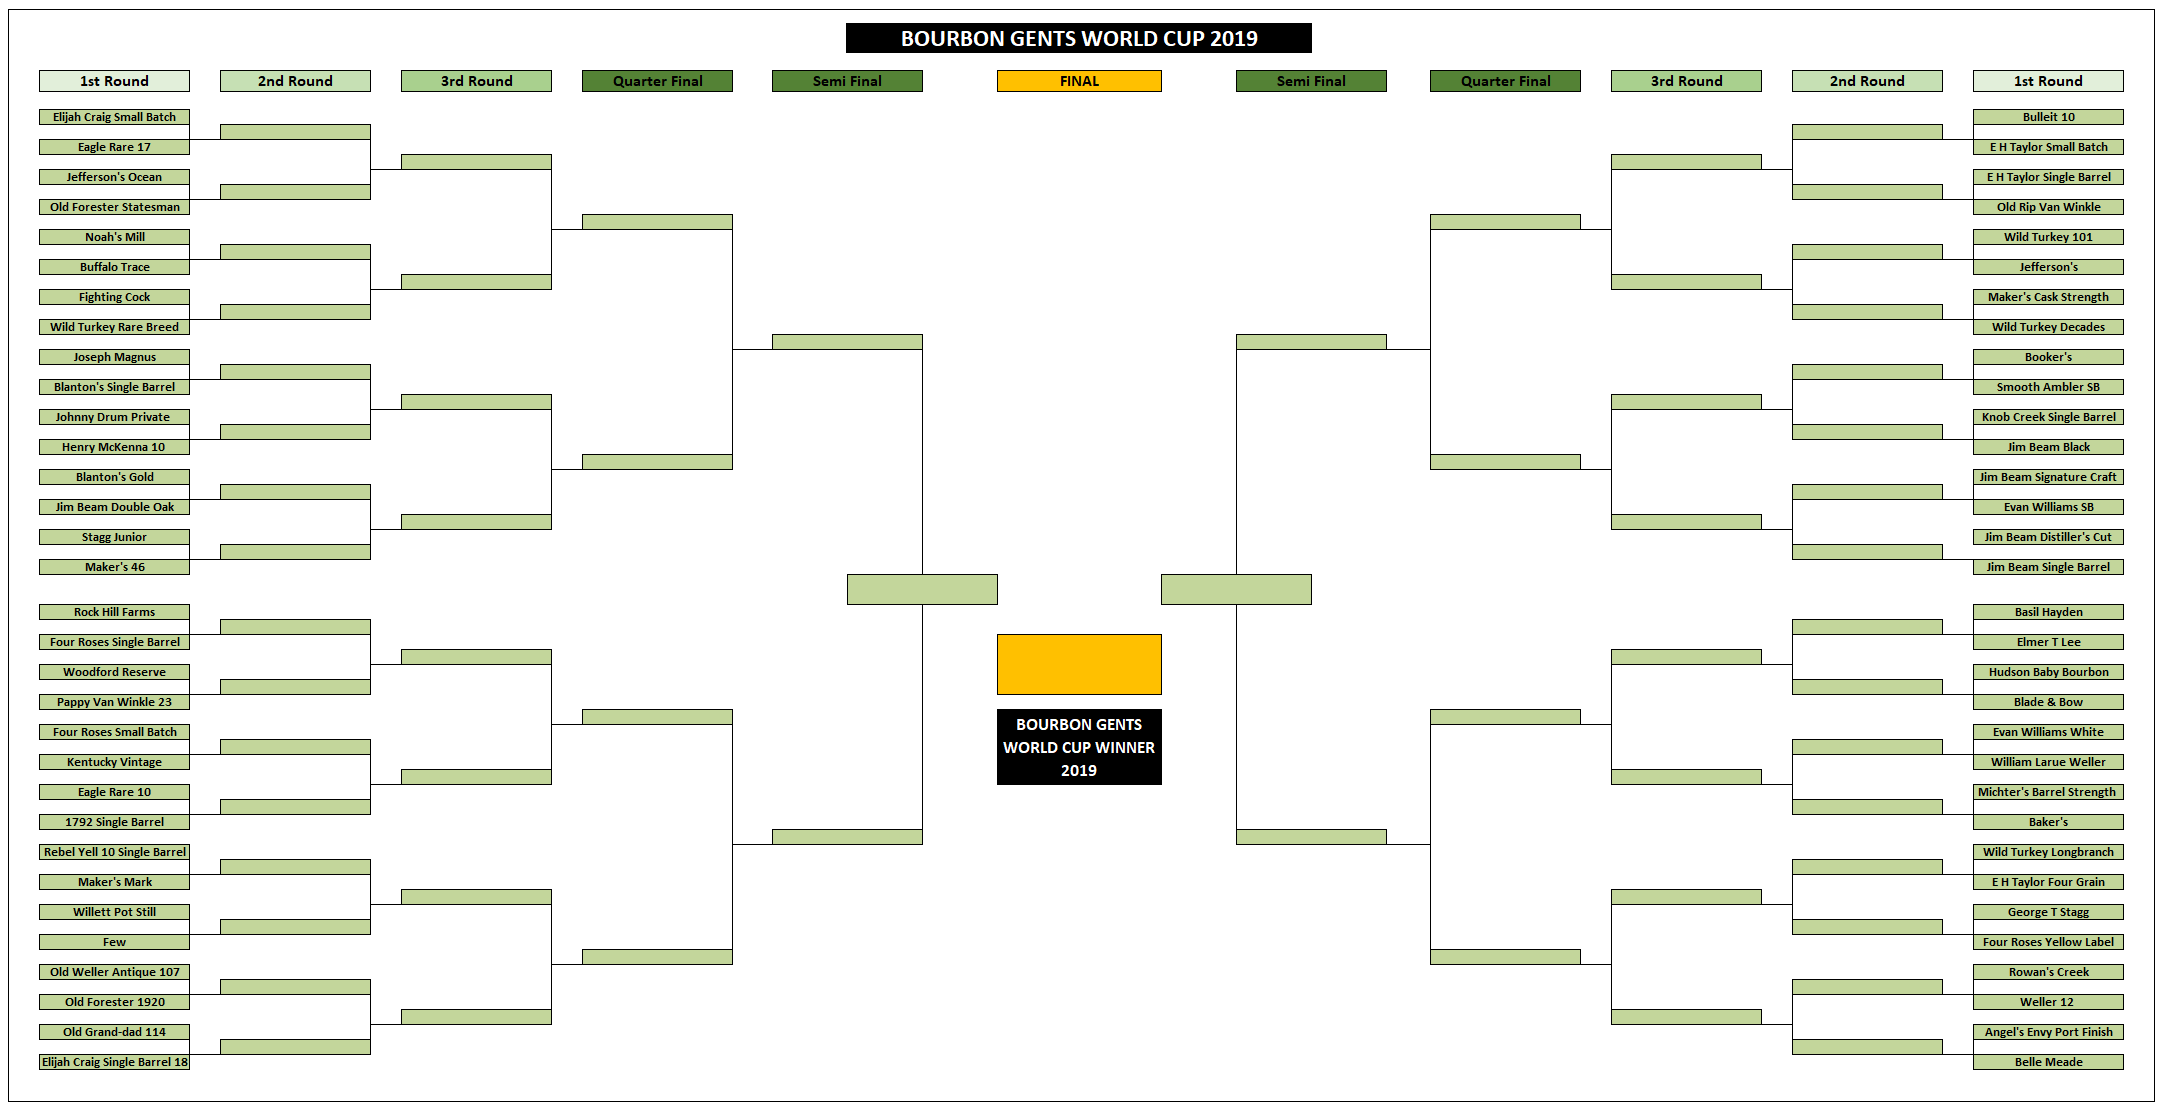 The 1st round draw for the 2019 Bourbon World Cup. Can you predict the Finalists?